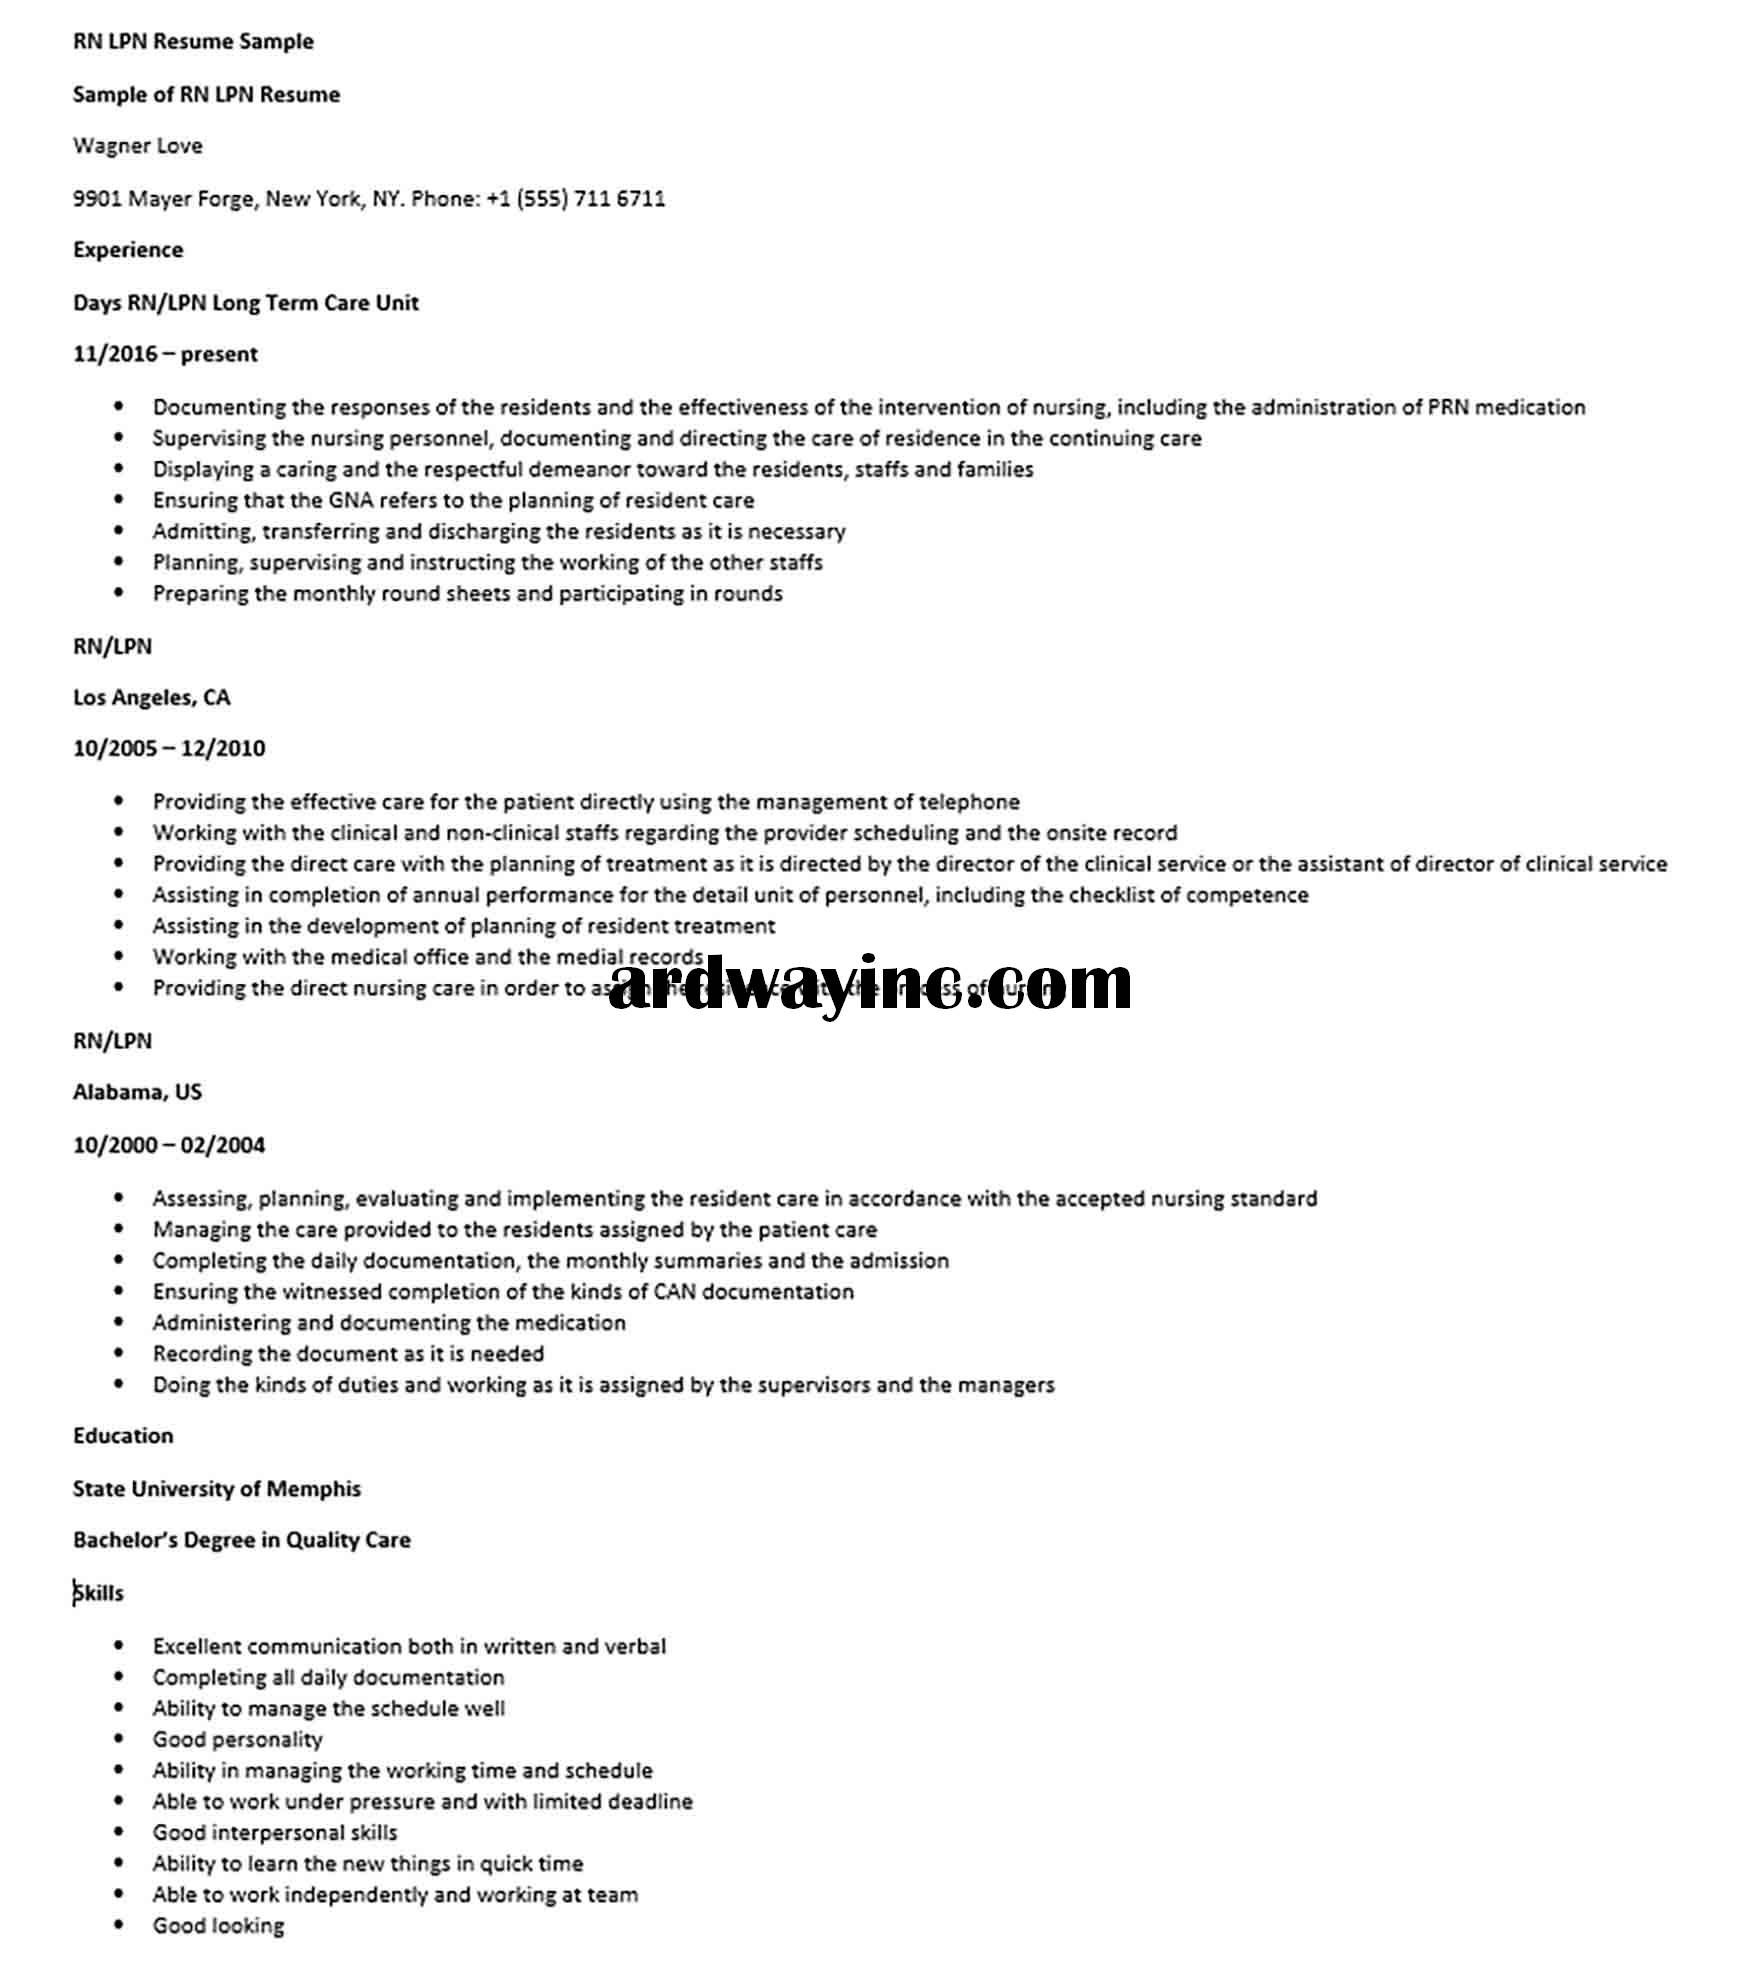 RN LPN Resume Sample in 2020 Lpn resume, Lpn, Good